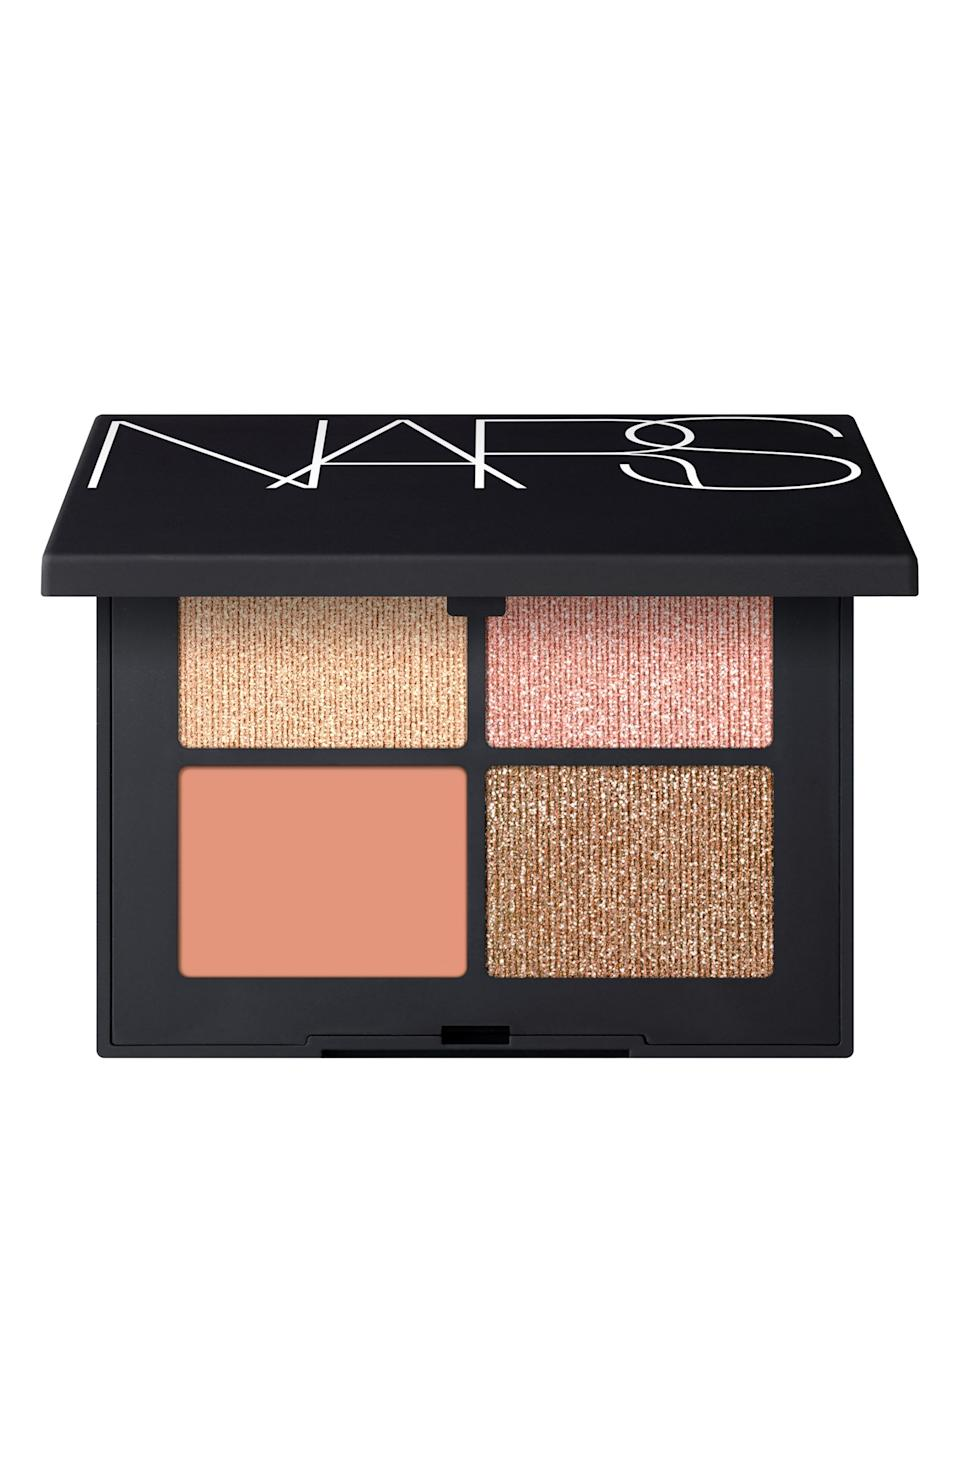 """<p><strong>NARS</strong></p><p>nordstrom.com</p><p><strong>$52.00</strong></p><p><a href=""""https://go.redirectingat.com?id=74968X1596630&url=https%3A%2F%2Fwww.nordstrom.com%2Fs%2Fnars-quad-eyeshadow-palette%2F5030868&sref=https%3A%2F%2Fwww.cosmopolitan.com%2Fstyle-beauty%2Fbeauty%2Fg36596599%2Fbest-eyeshadow-palettes%2F"""" rel=""""nofollow noopener"""" target=""""_blank"""" data-ylk=""""slk:Shop Now"""" class=""""link rapid-noclick-resp"""">Shop Now</a></p><p>I know, <em>I know</em>—in what world is a beginner palette over 50 bucks?! But listen—these velvety formulas basically blend themselves, and the <strong>easy-to-wear shades can be blended as is, or dampened and used as <a href=""""https://www.cosmopolitan.com/style-beauty/beauty/g10229759/best-liquid-eyeliners/"""" rel=""""nofollow noopener"""" target=""""_blank"""" data-ylk=""""slk:liquid eyeliner"""" class=""""link rapid-noclick-resp"""">liquid eyeliner</a>.</strong> Try the soft, coral, champagne colors in this palette, or choose from one of the other color combos that fit your preference.</p>"""